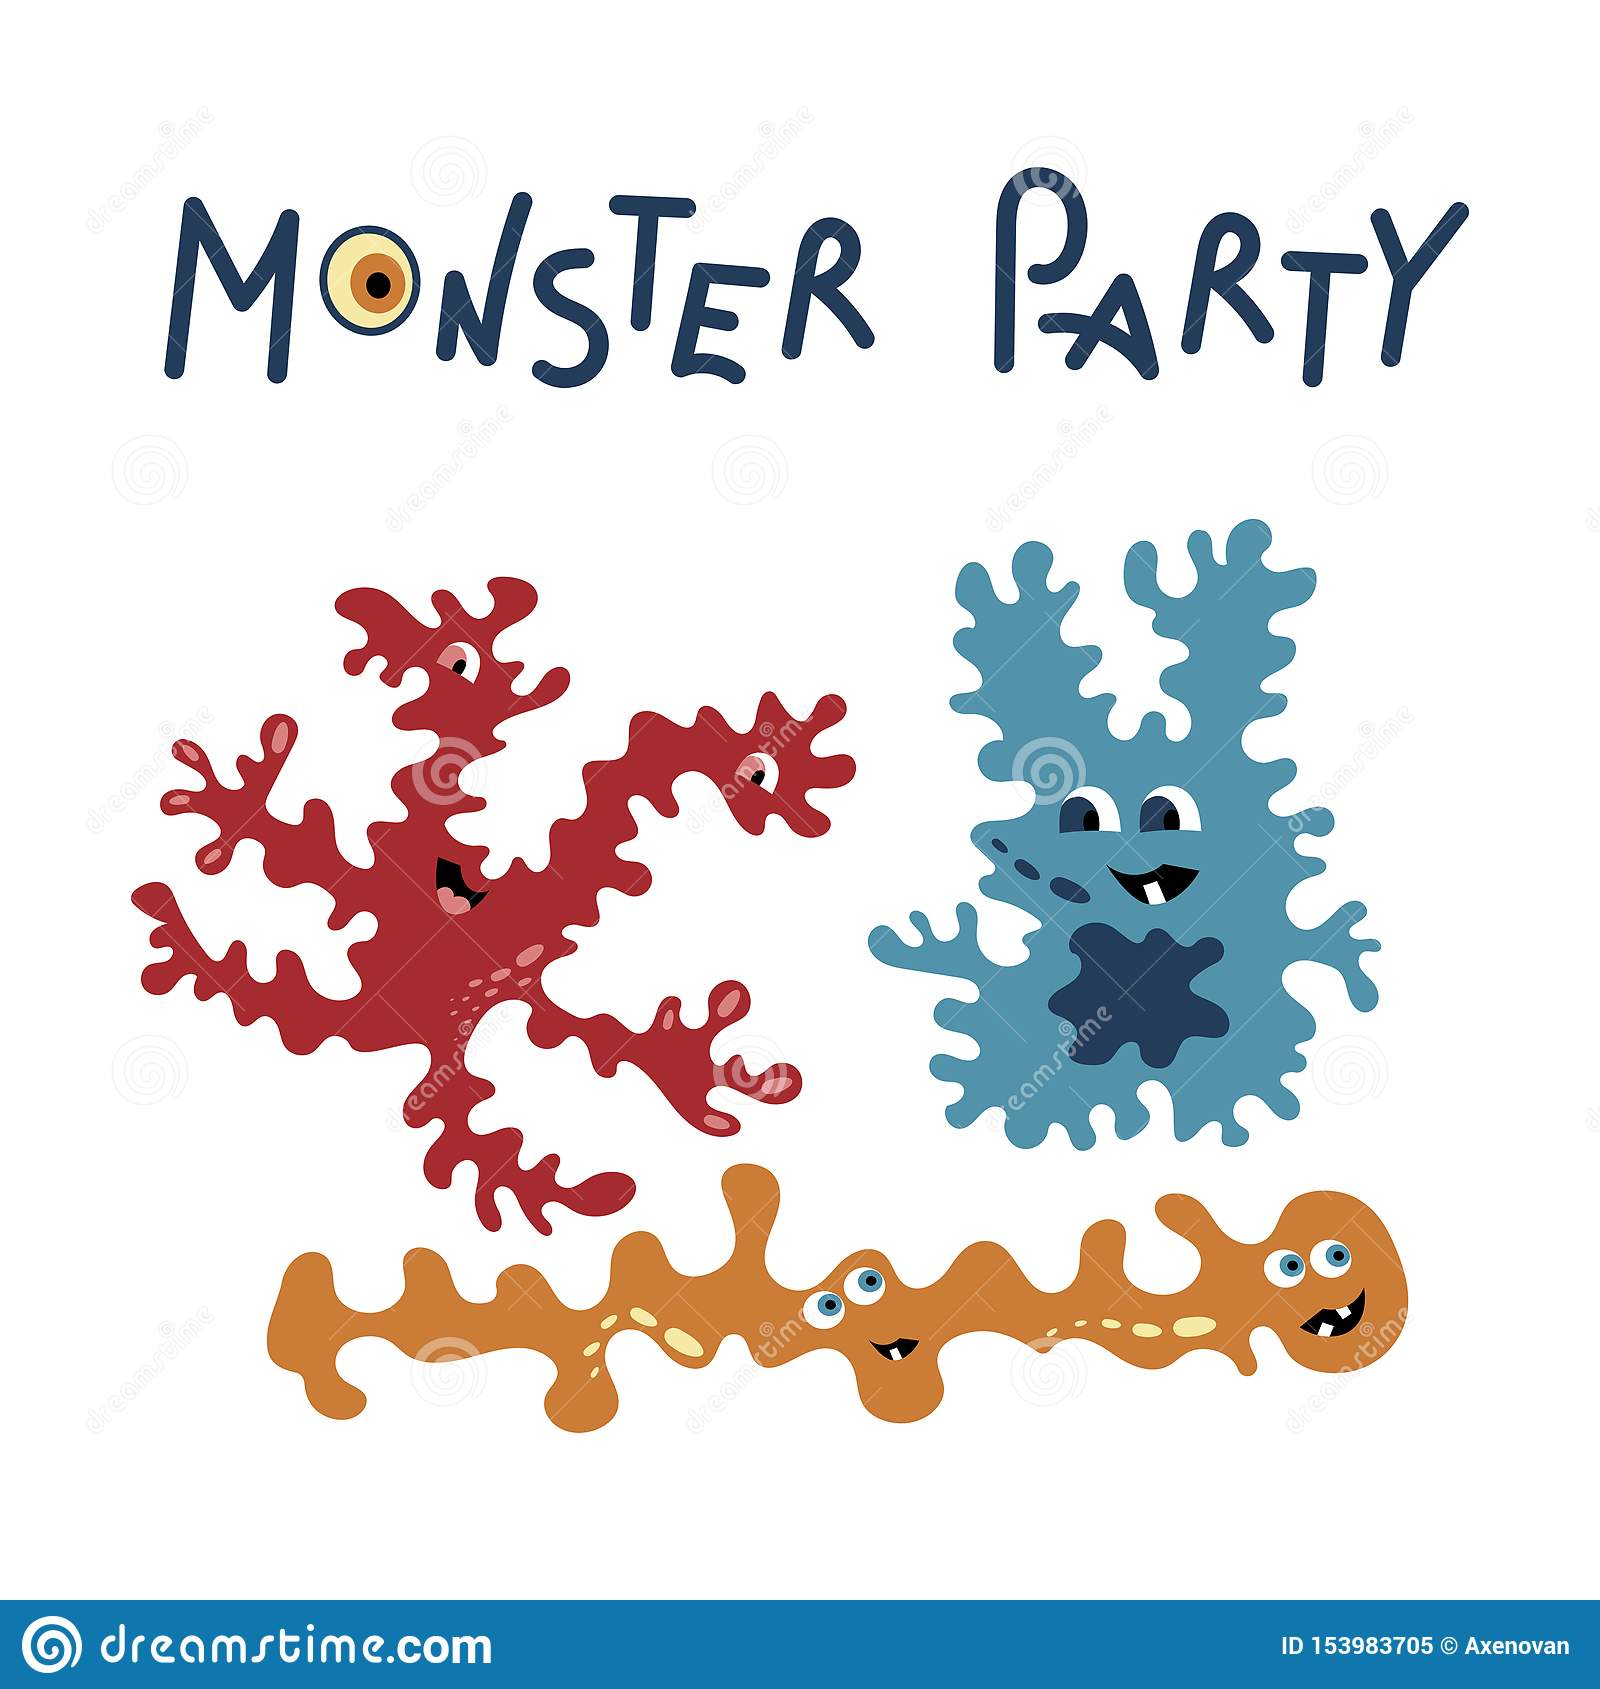 Monster party card design. Vector